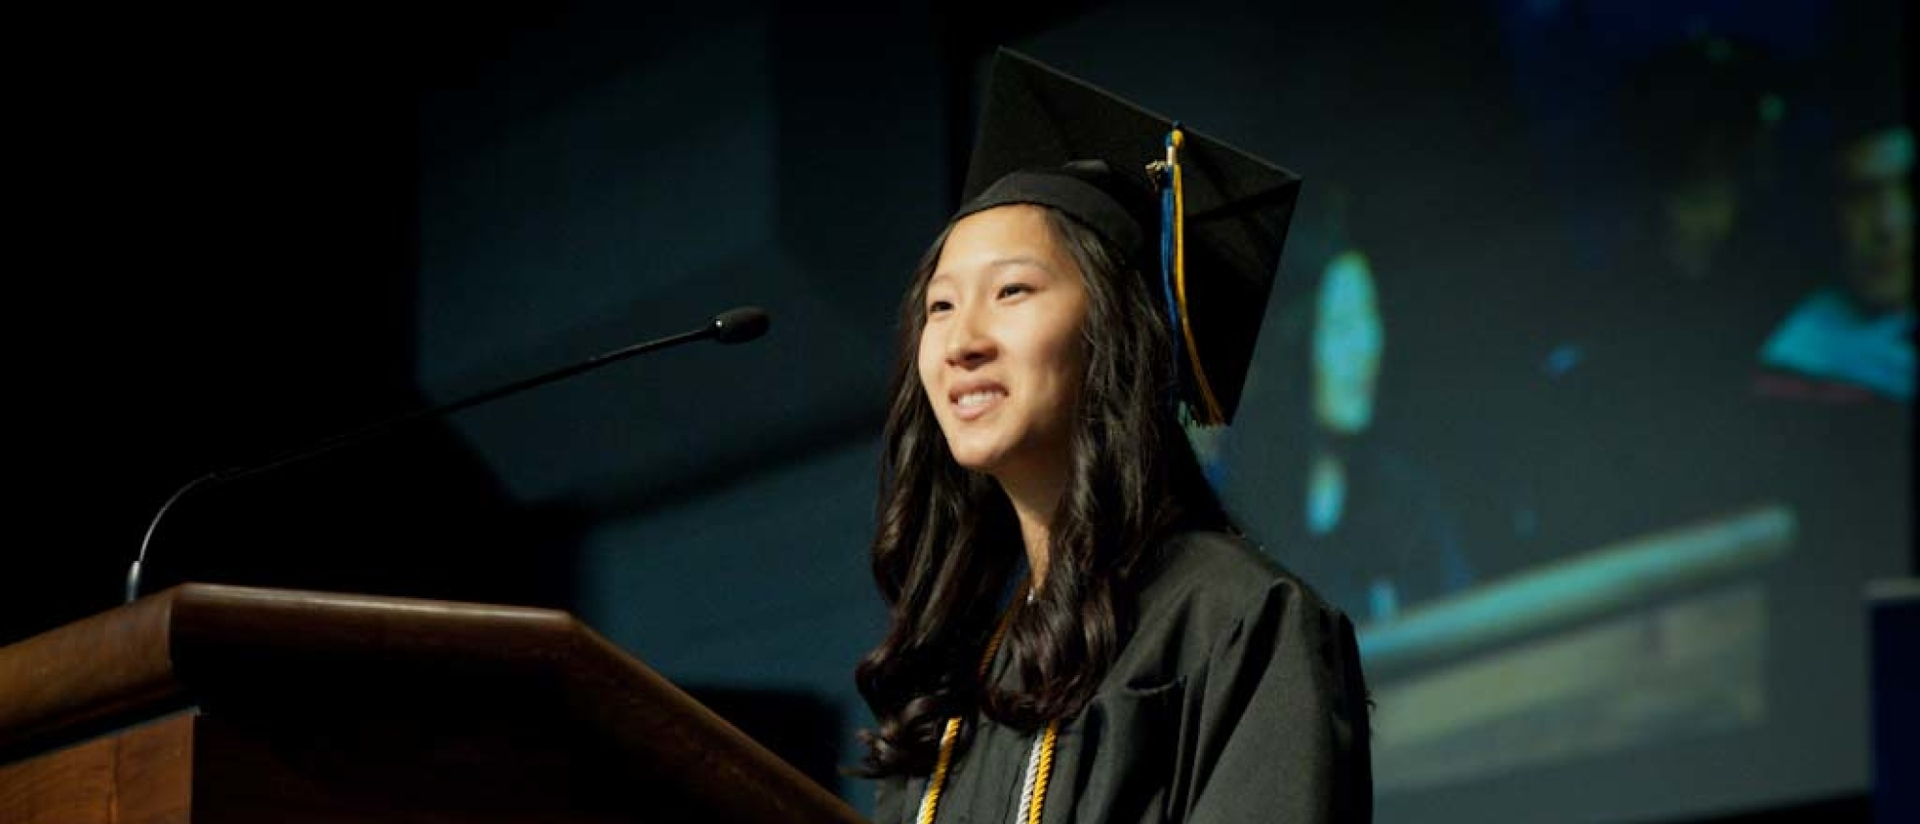 Student speaking at commencement.